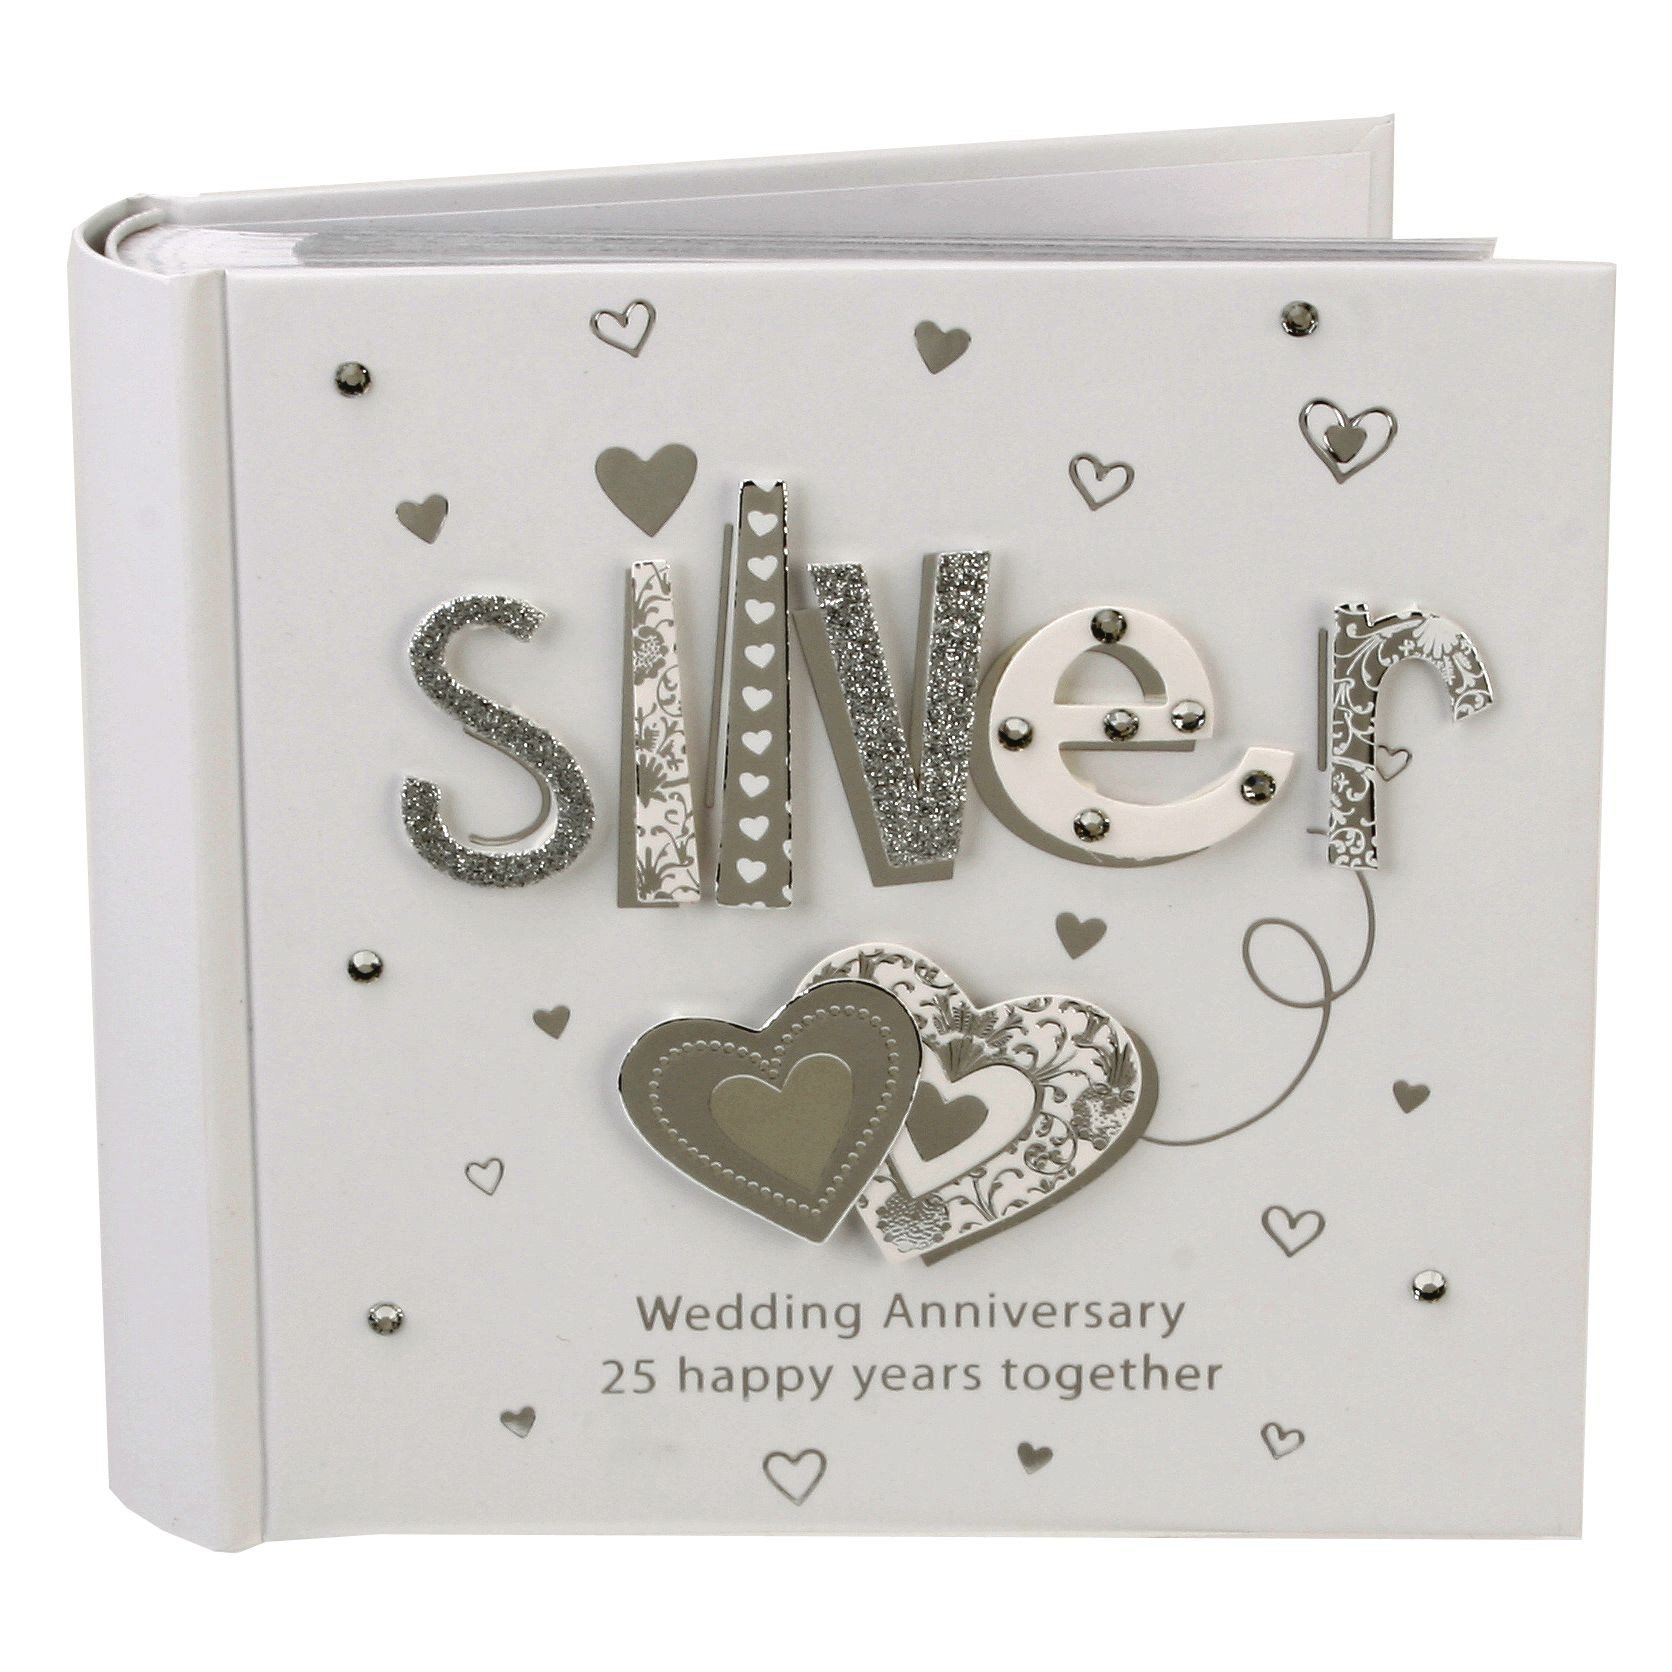 Gift Ideas For 25th Wedding Anniversary For Husband: 10 Fabulous 25Th Wedding Anniversary Ideas For Husband 2019